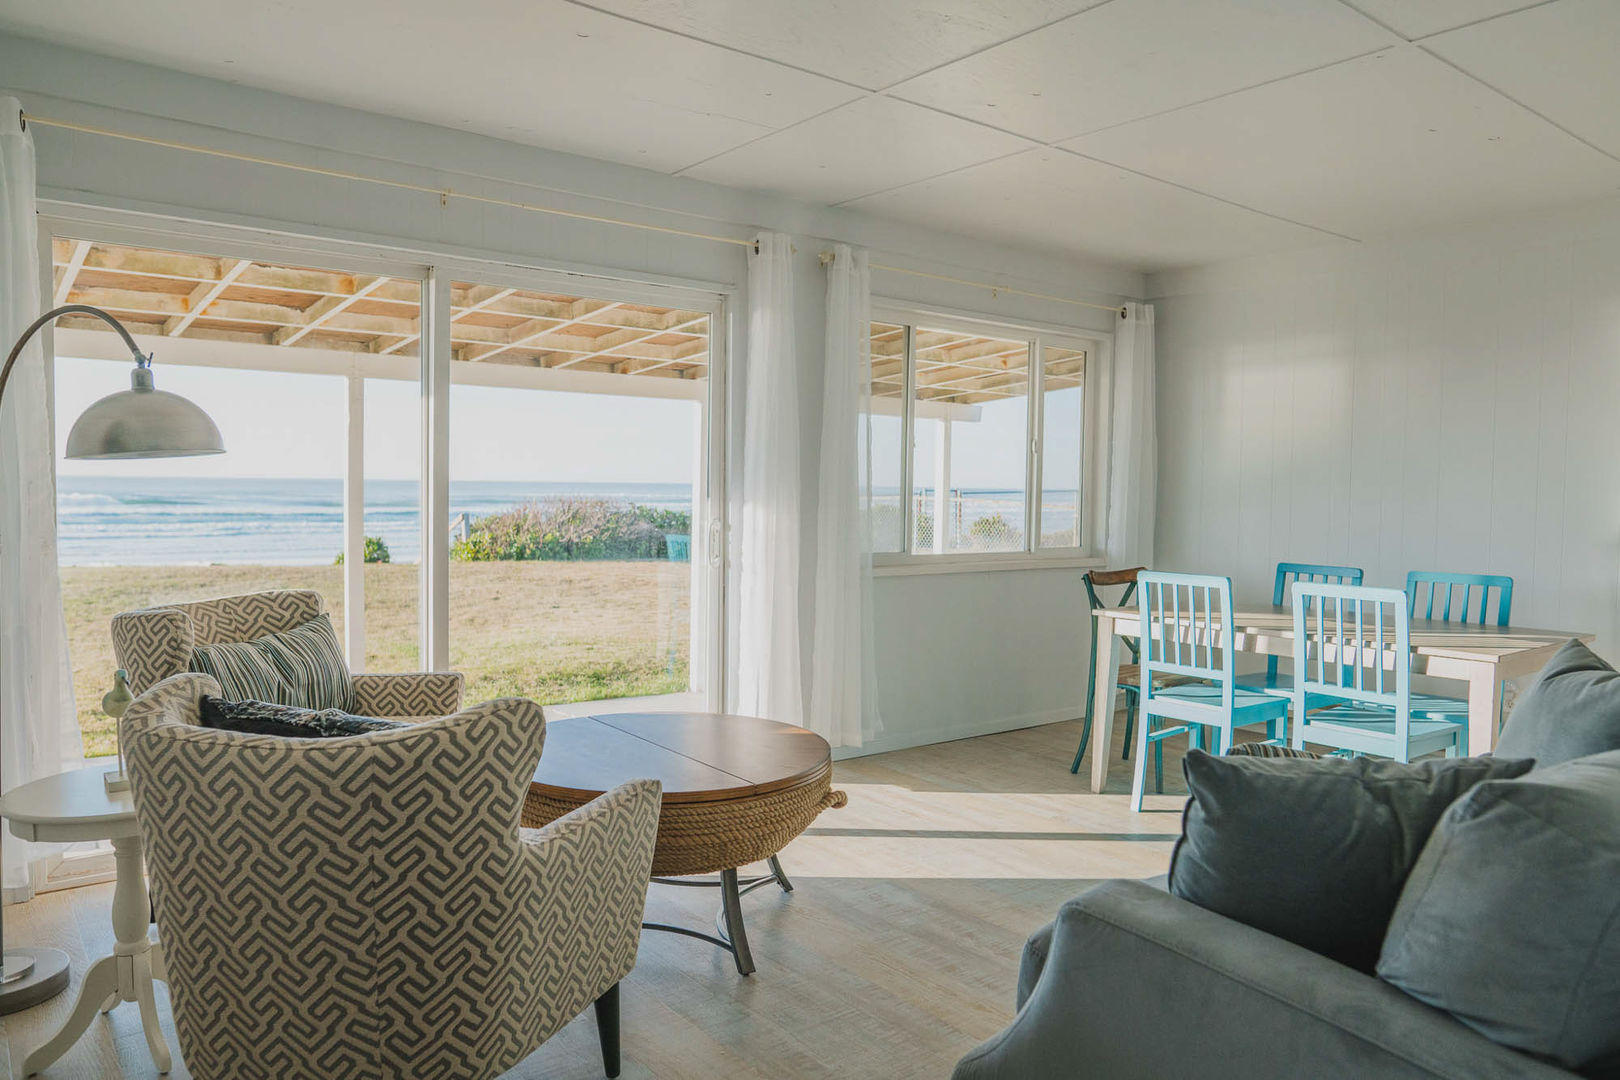 Bring in the coastal breeze and salty sea air by opening up the sliding door and windows and experience the Pacific Ocean without leaving the comfort of the couch.